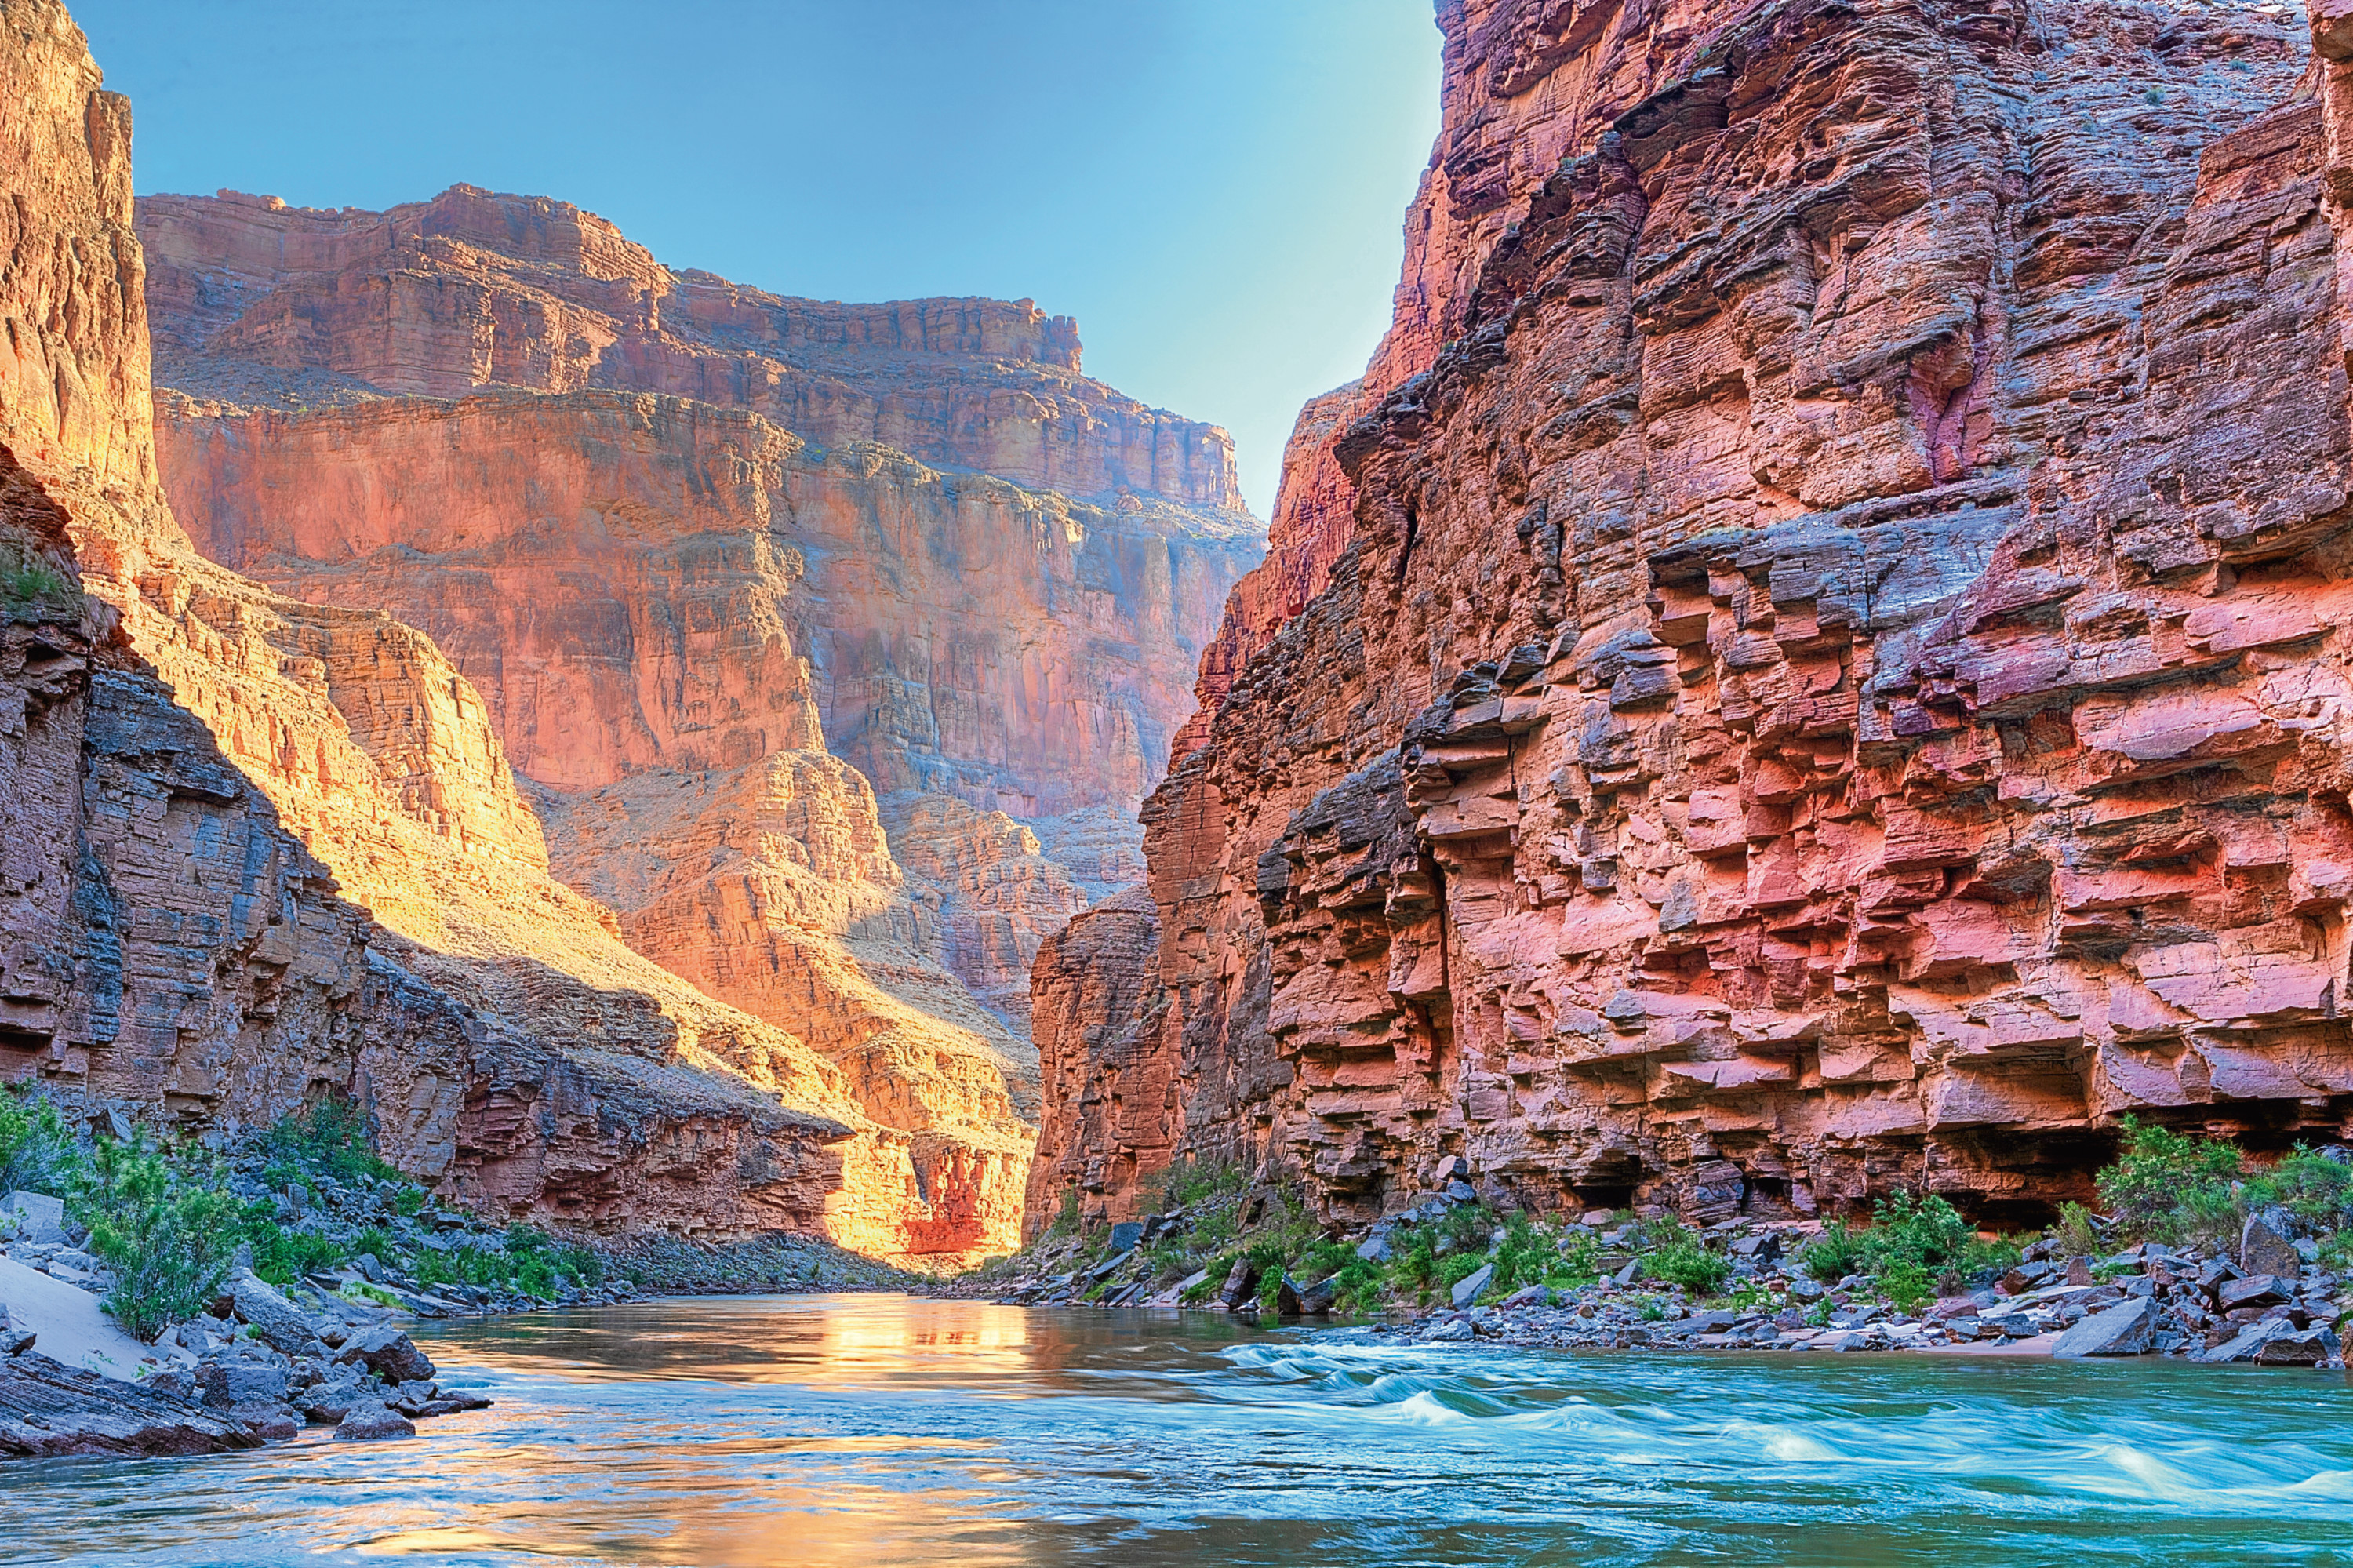 Inner Grand Canyon (iStock)